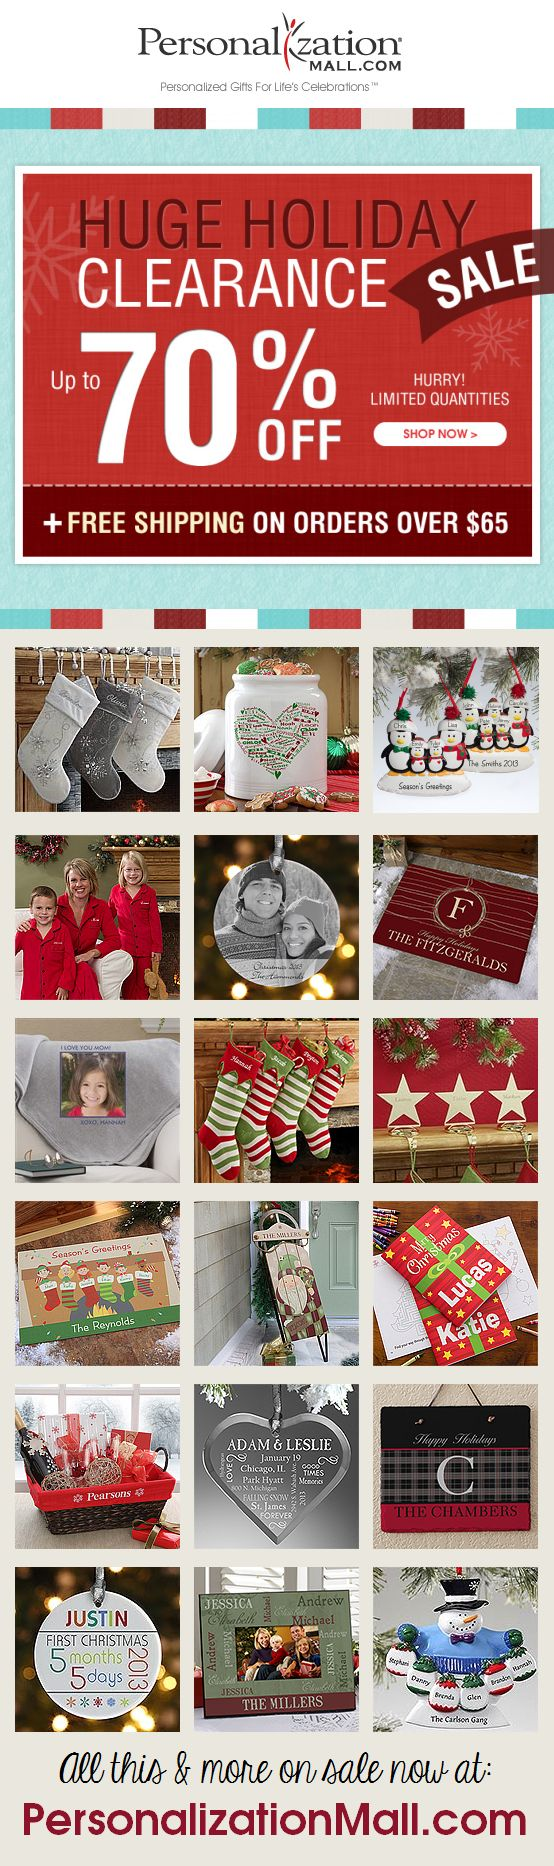 PersonalizationMall is having a HUGE Christmas Clearance Sale! You can save up to 70% off Personalized Christmas Stockings, Christmas Ornaments and all types of adorable gifts and decorations - buy now and save the gifts for next year! #Christmas #Sale #Clearance: Adorable Gifts, Personalizationmall, Decorations Buy, Christmas Ornament